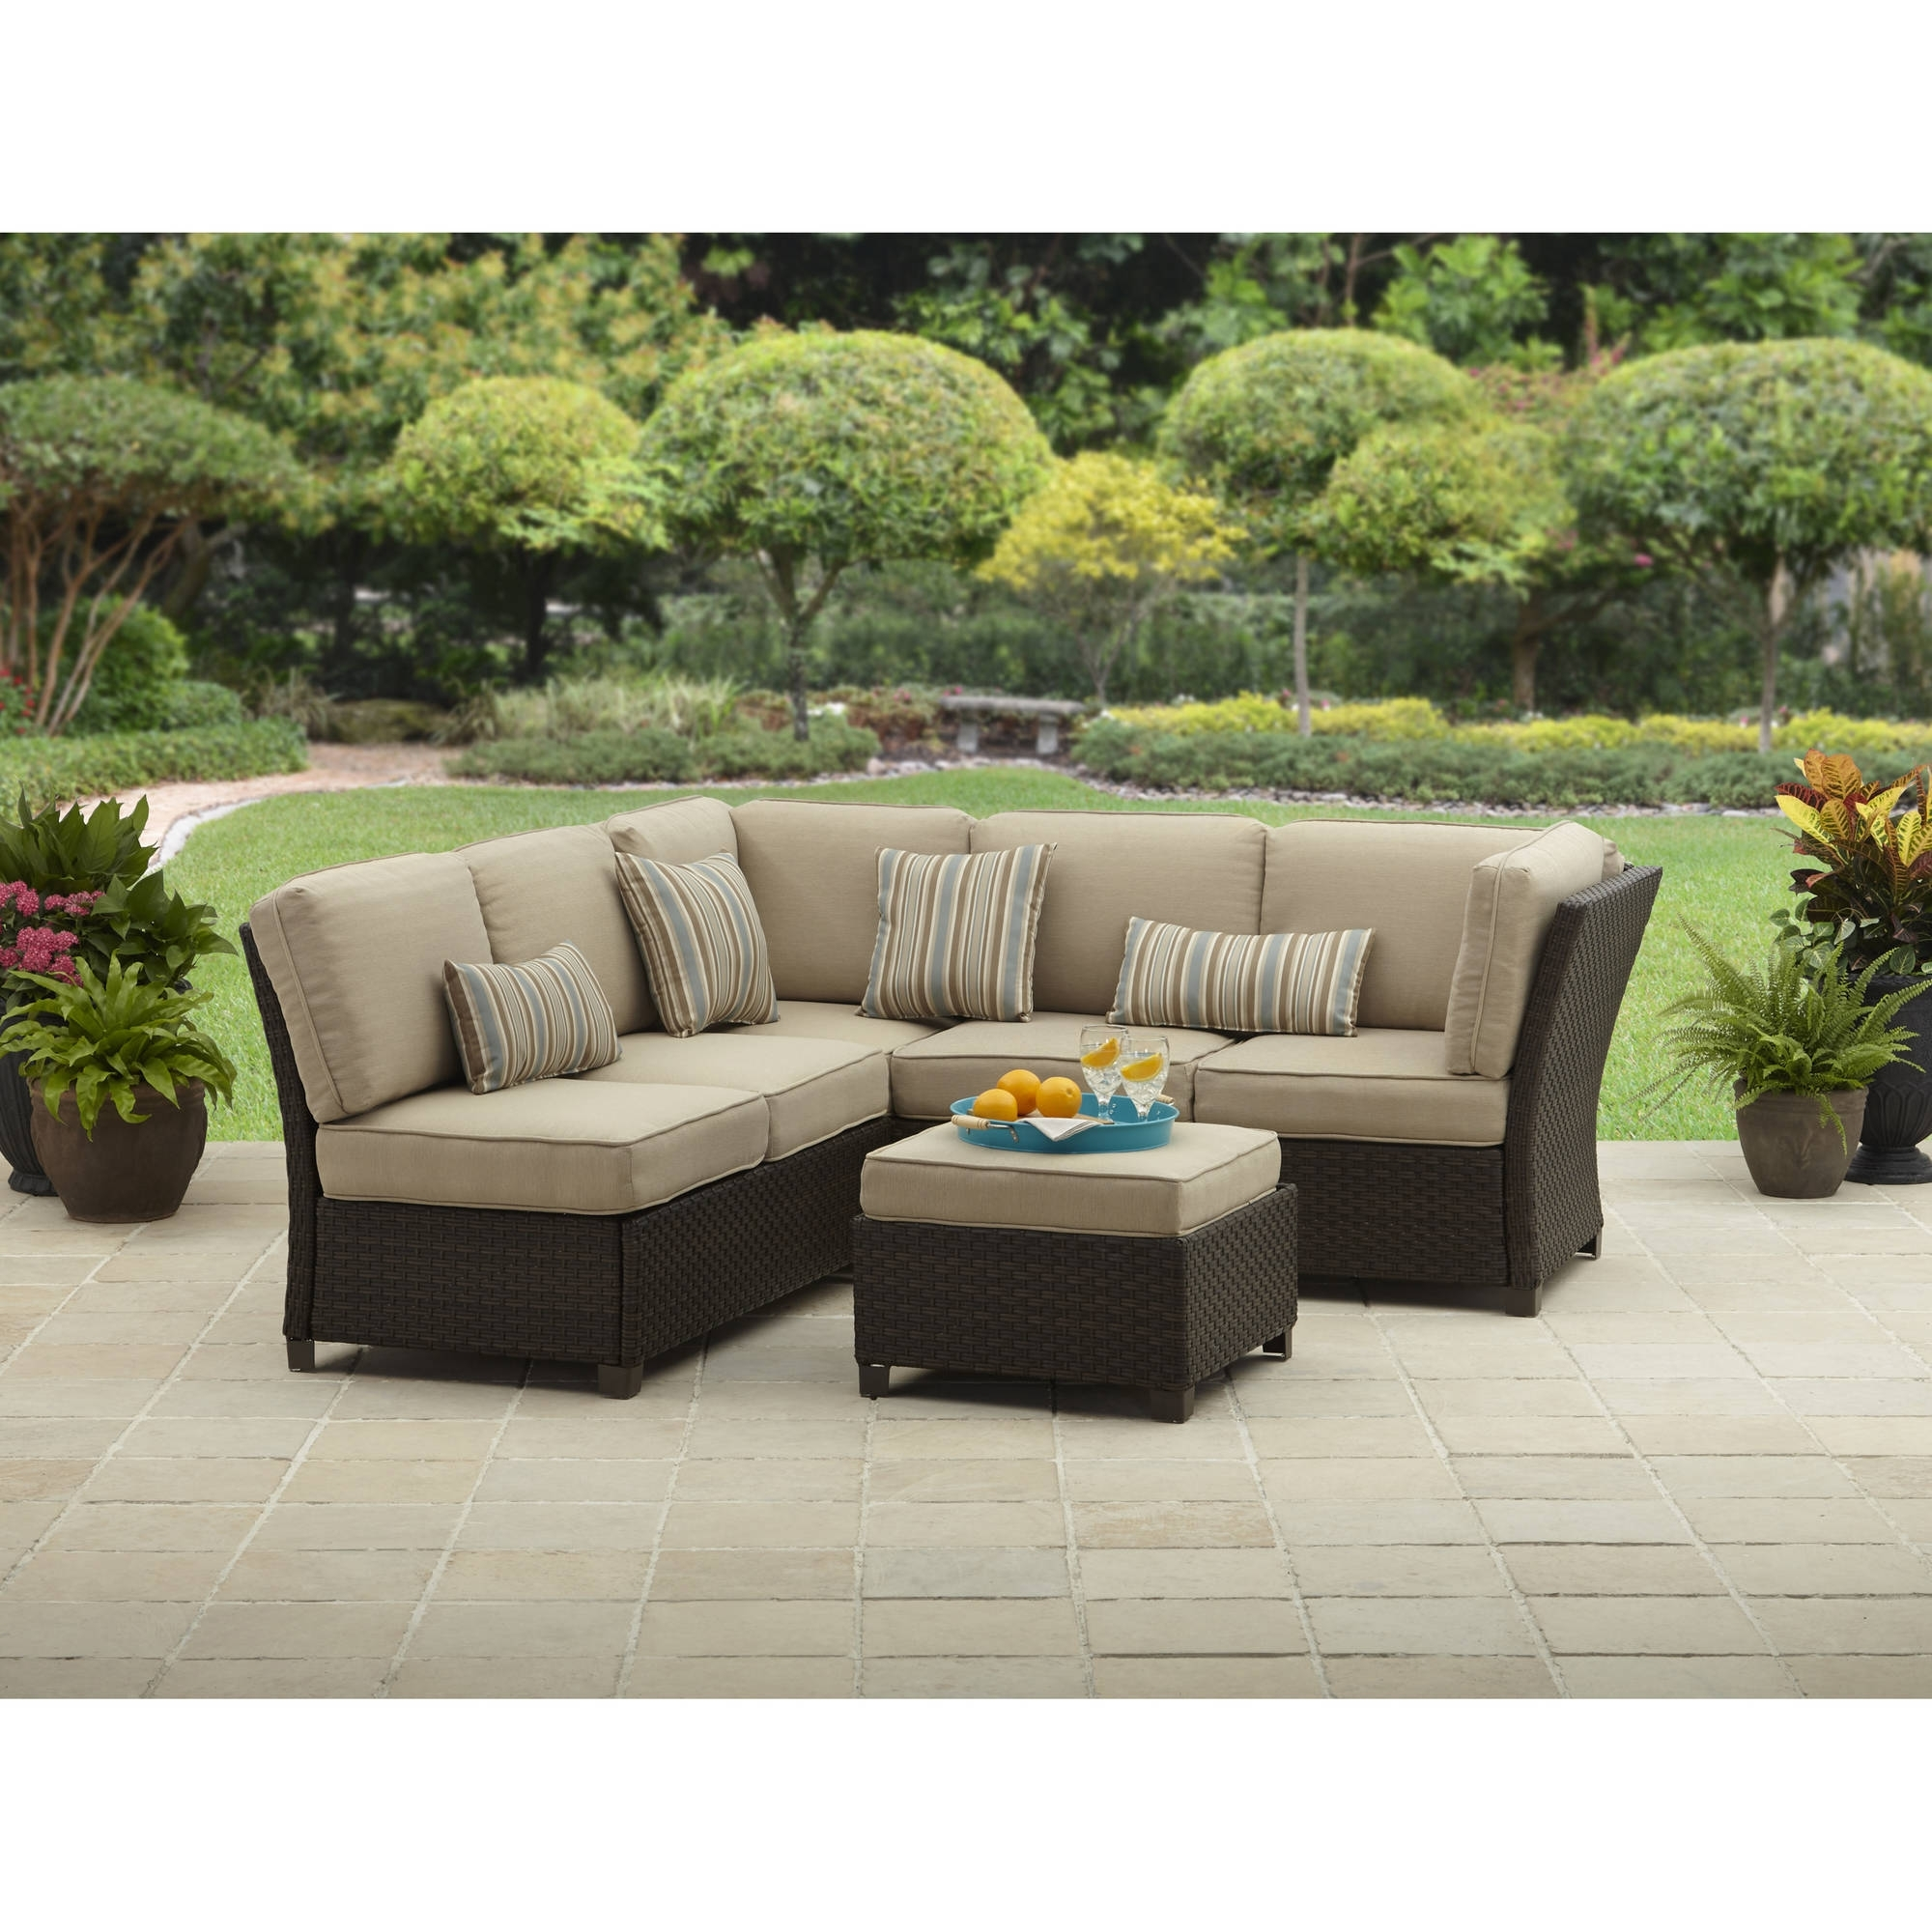 Well Liked Sectional Sofas At Walmart With Better Homes And Gardens Cadence Wicker Outdoor Sectional Sofa Set (View 15 of 15)